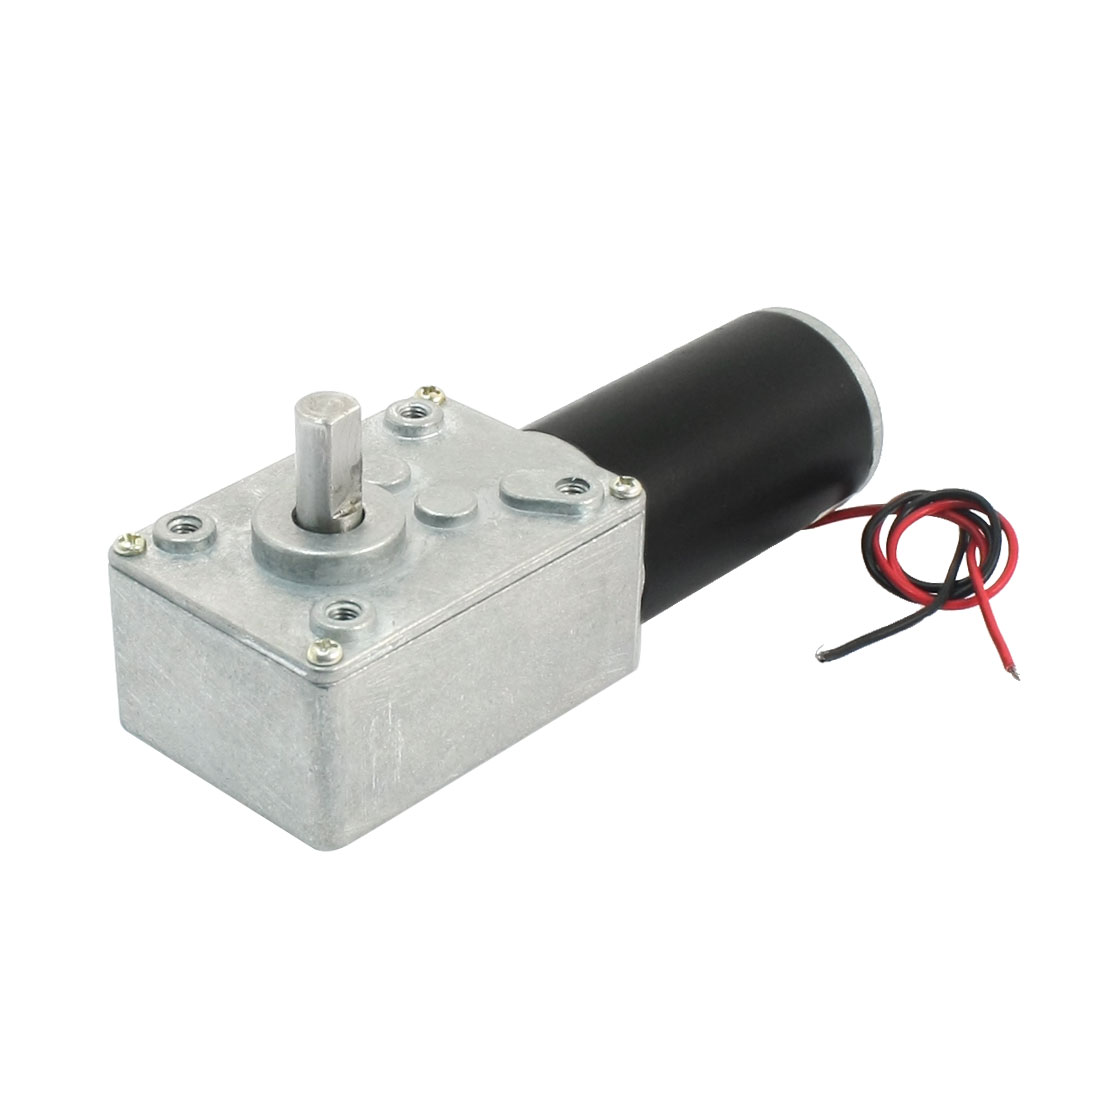 19cm Long Dual Wire Lead 5500/50RPM Speed Reduce Worm Gear Motor DC24V